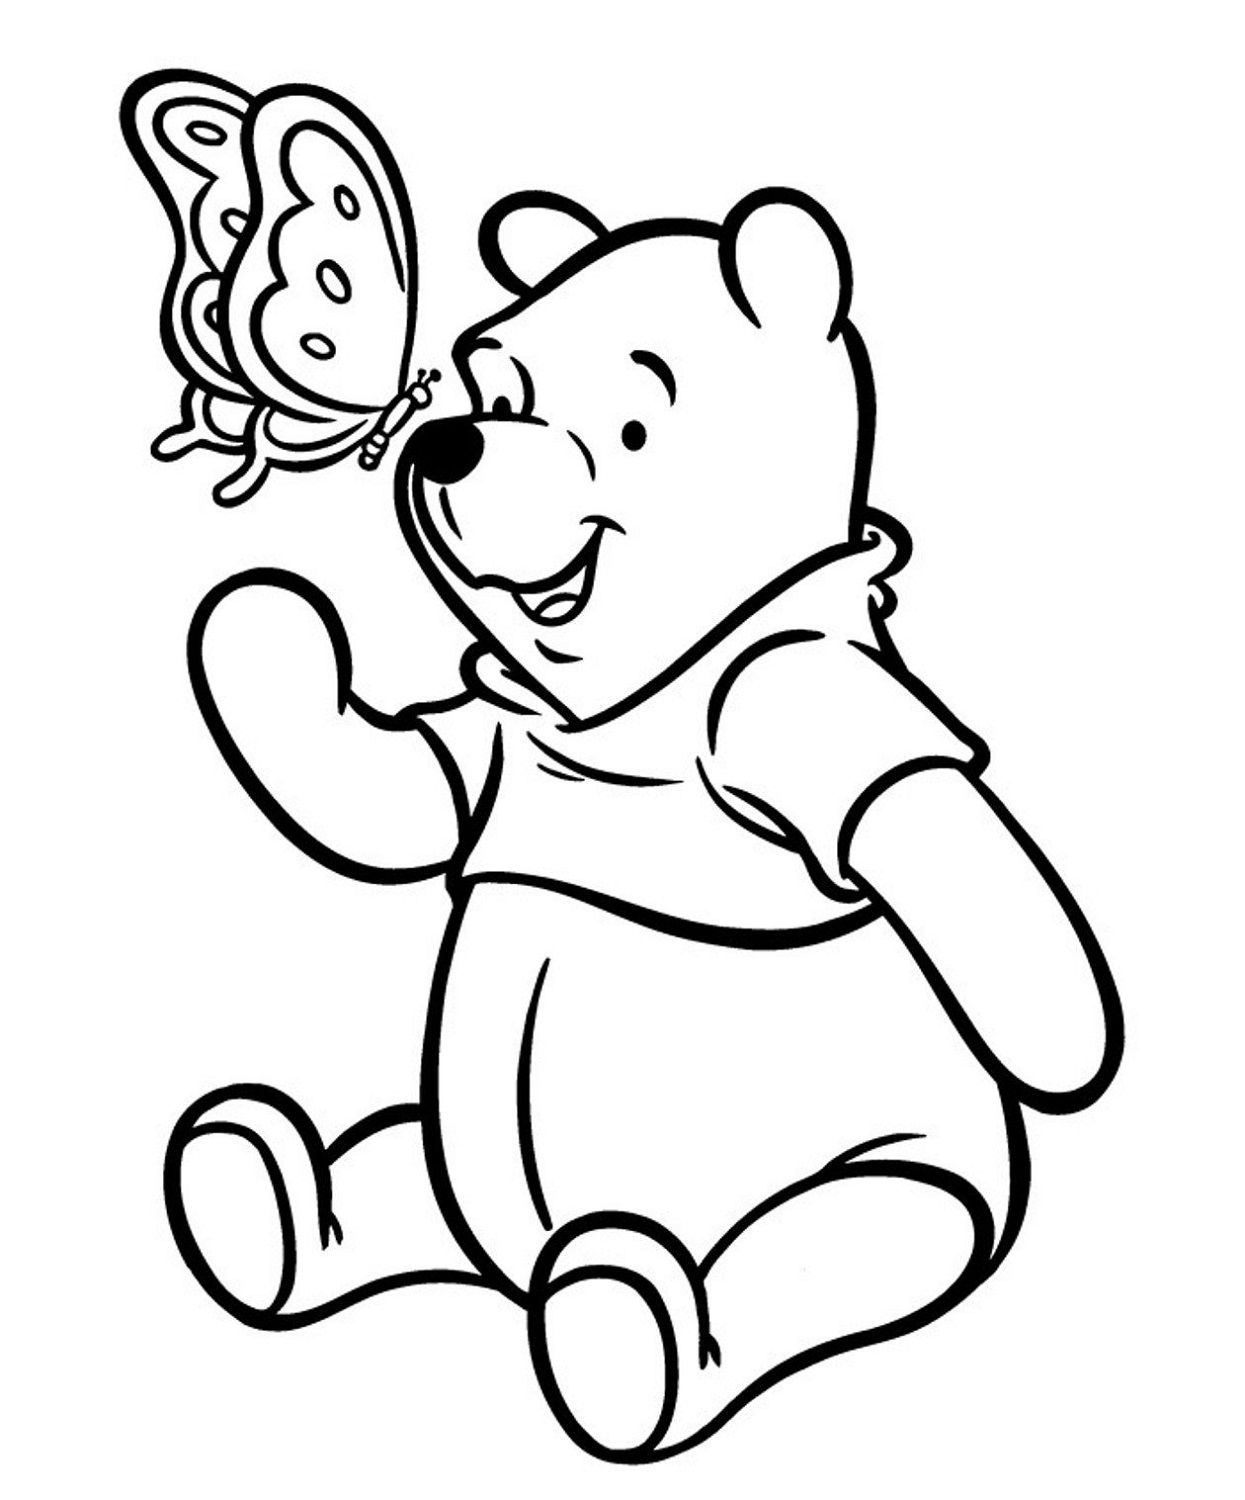 Colour Cartoon Characters Bear Coloring Pages Winnie The Pooh Pictures Coloring Pages For Kids